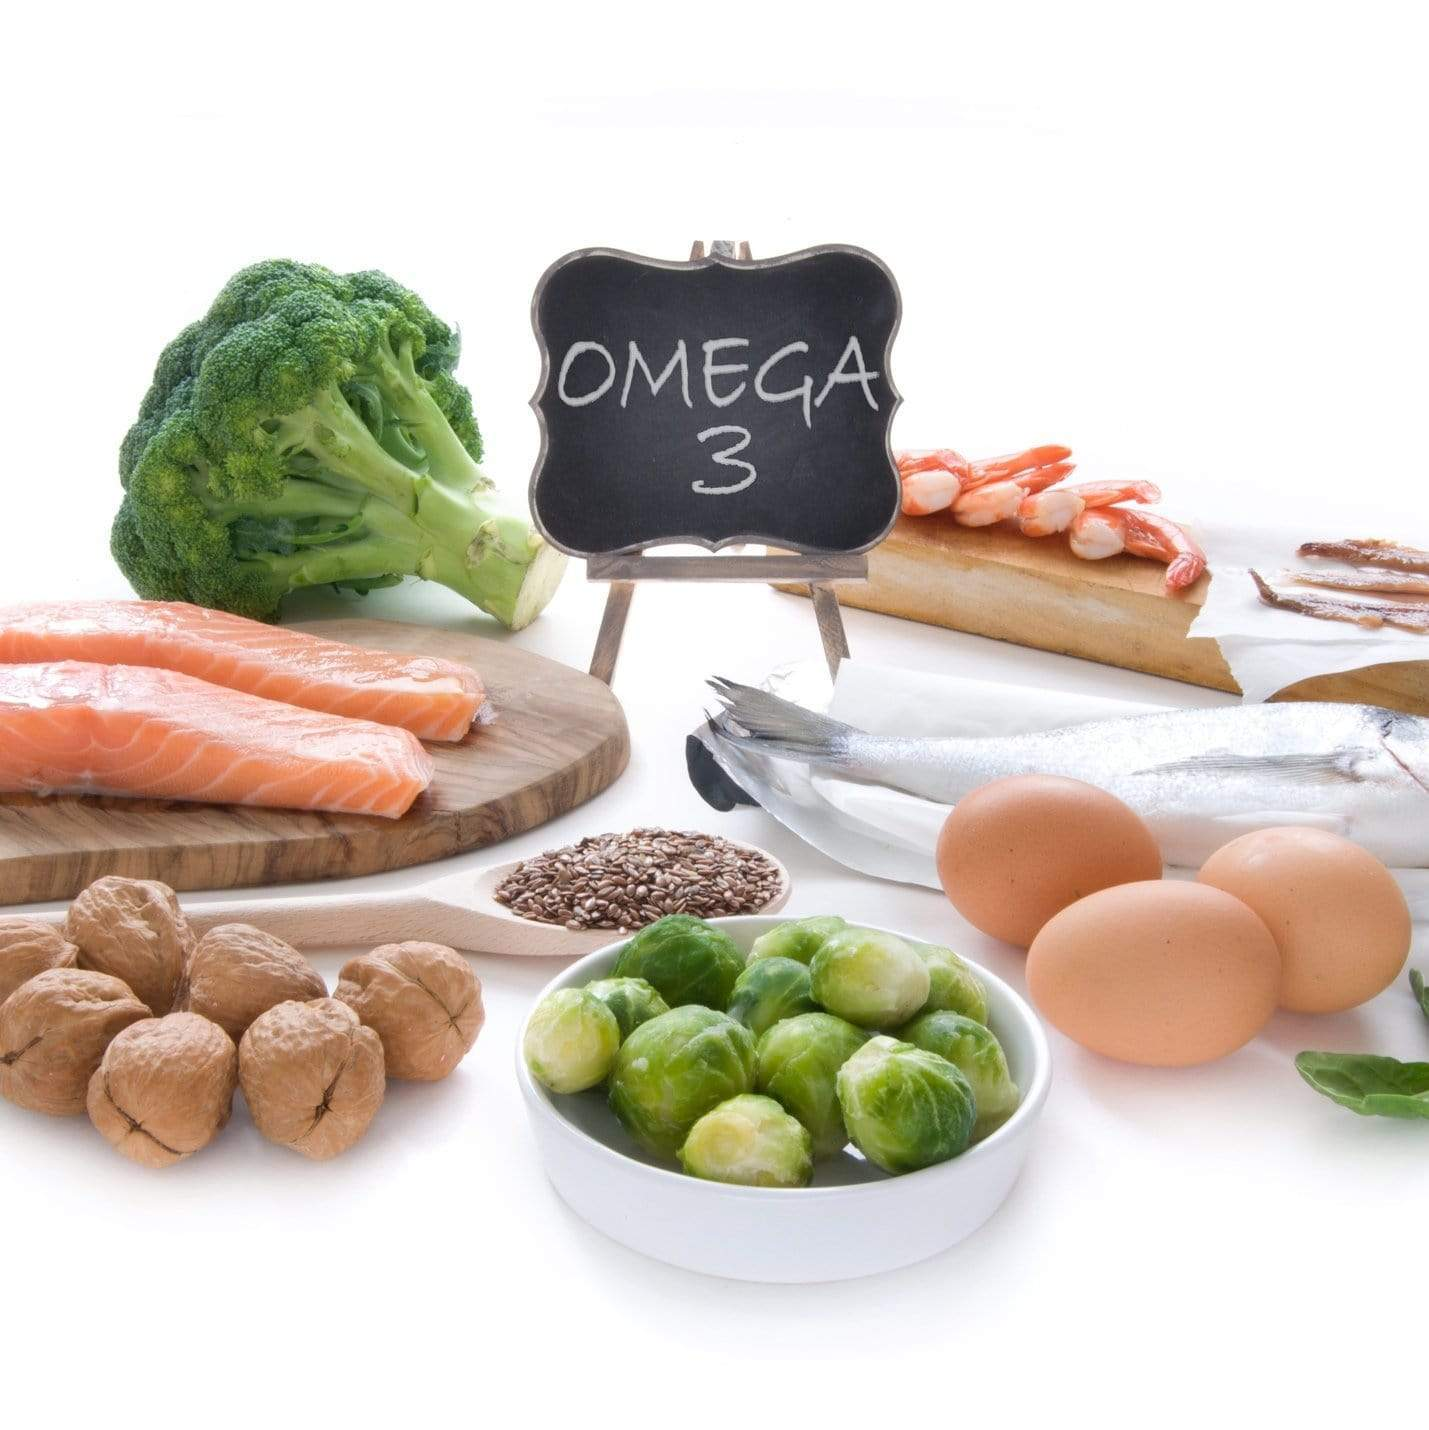 How Omega-3 Fat Can Help You Lose Weight